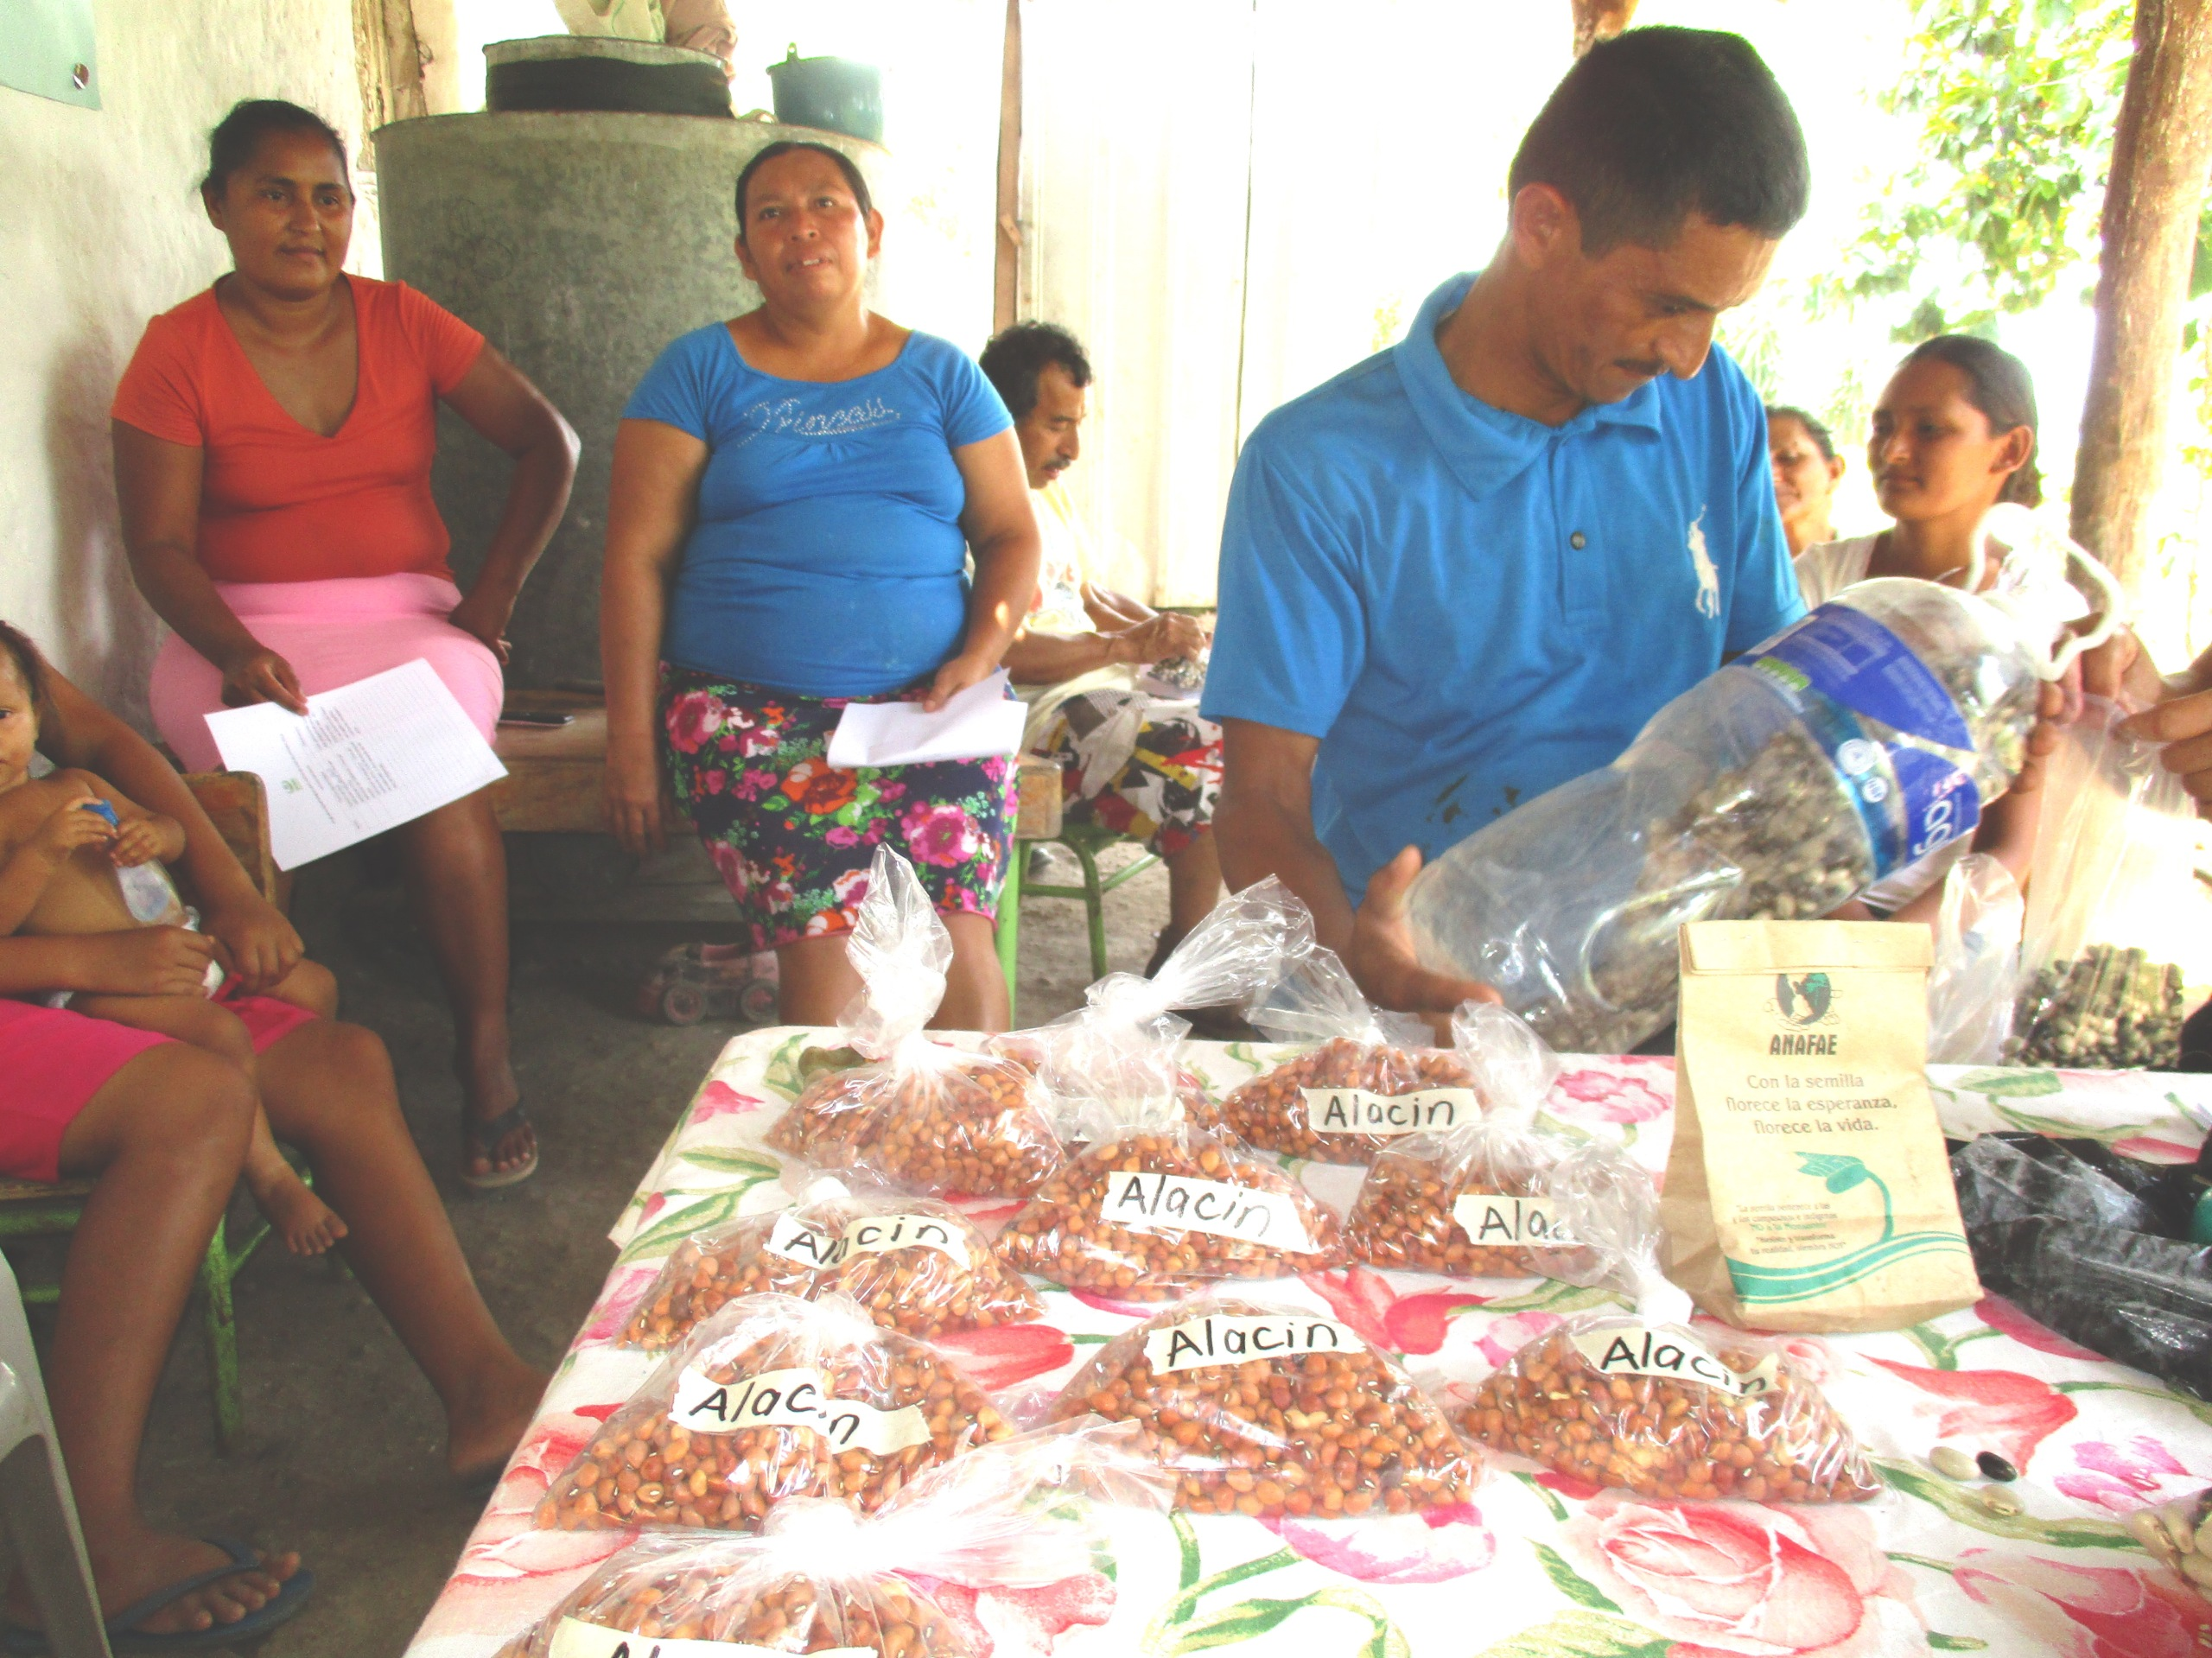 Vidal Chavez, husband of Mercedes Rios, explaining to women how to save seeds in a plastic bottle.